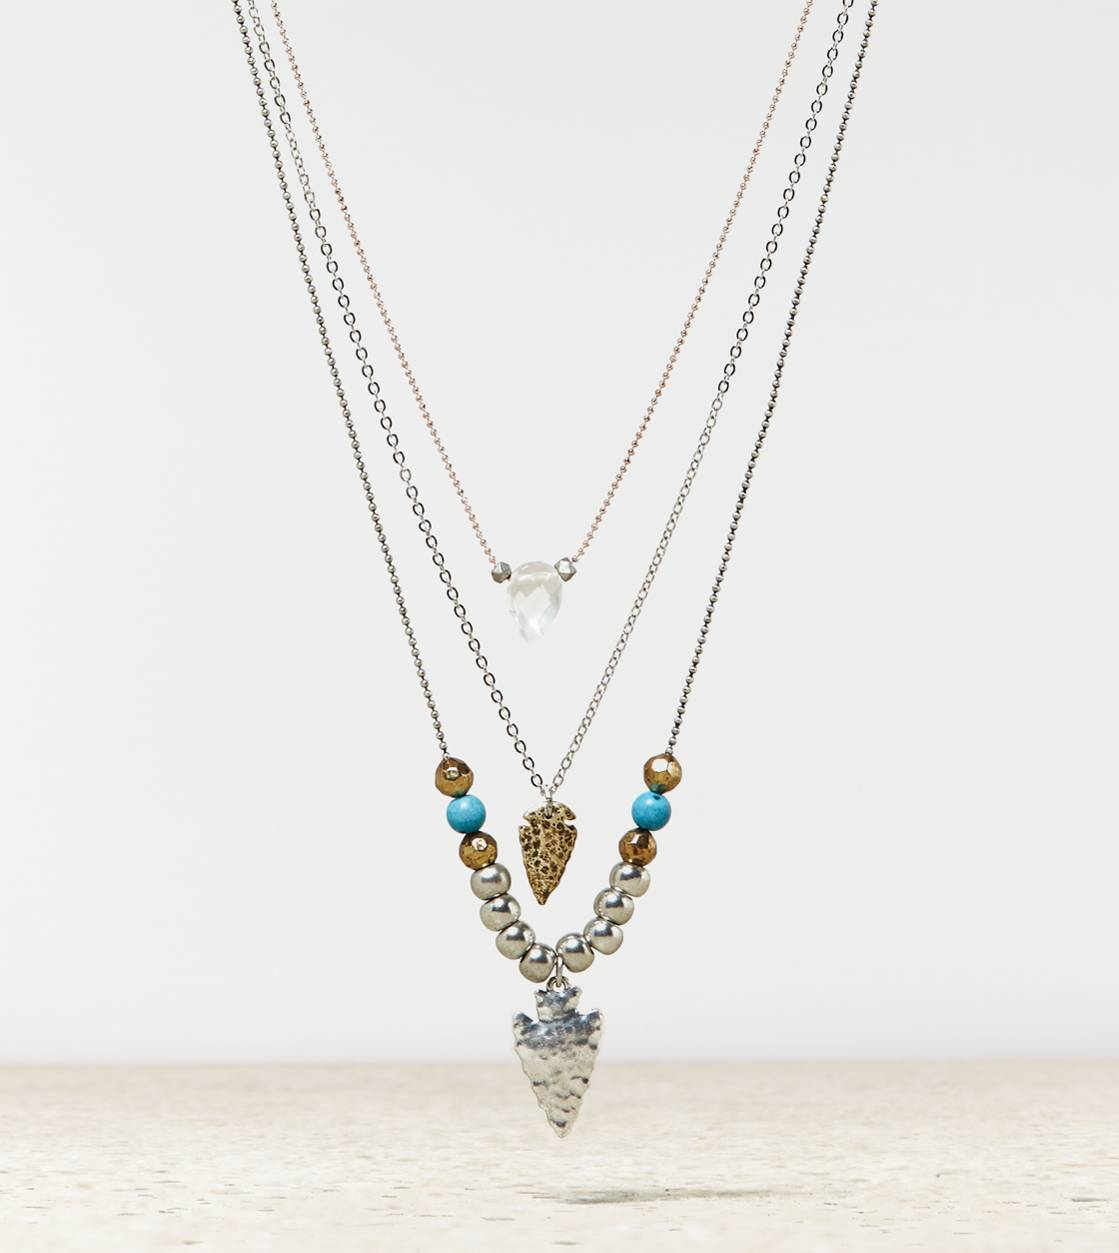 Mixed Metal AEO Tiered Arrowhead Necklace